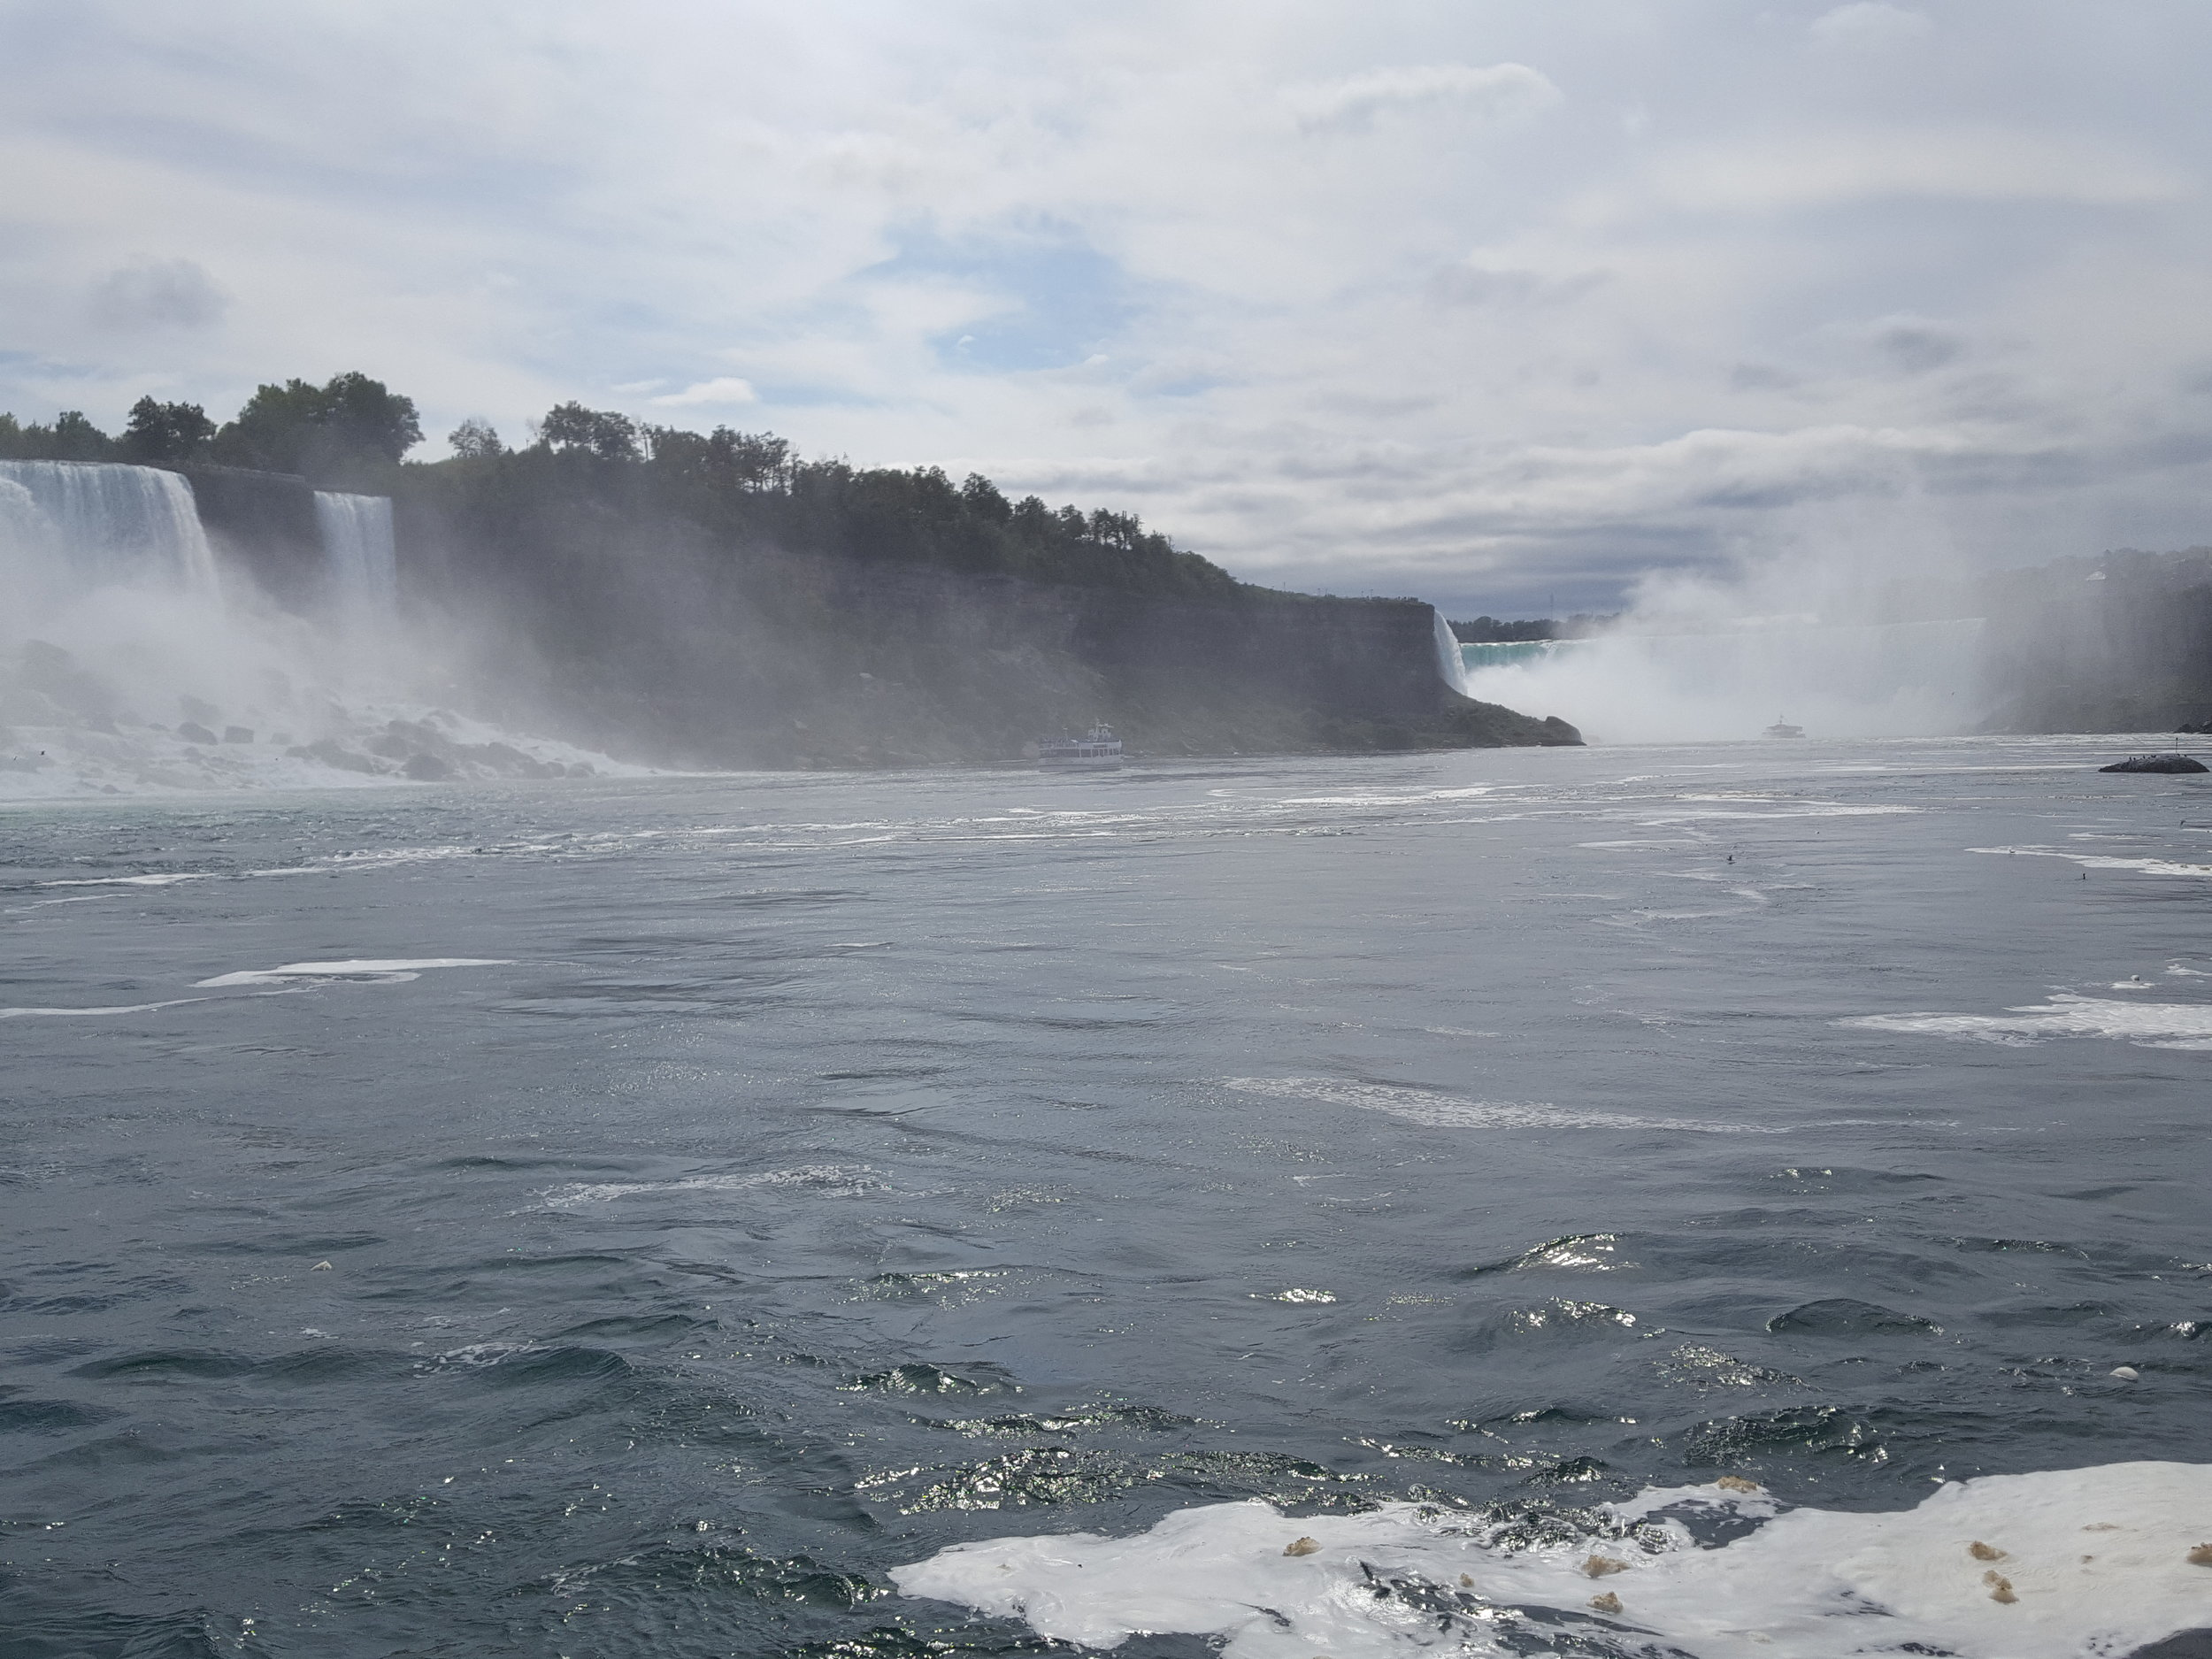 View of Niagara Falls from the deck of the Hornblower